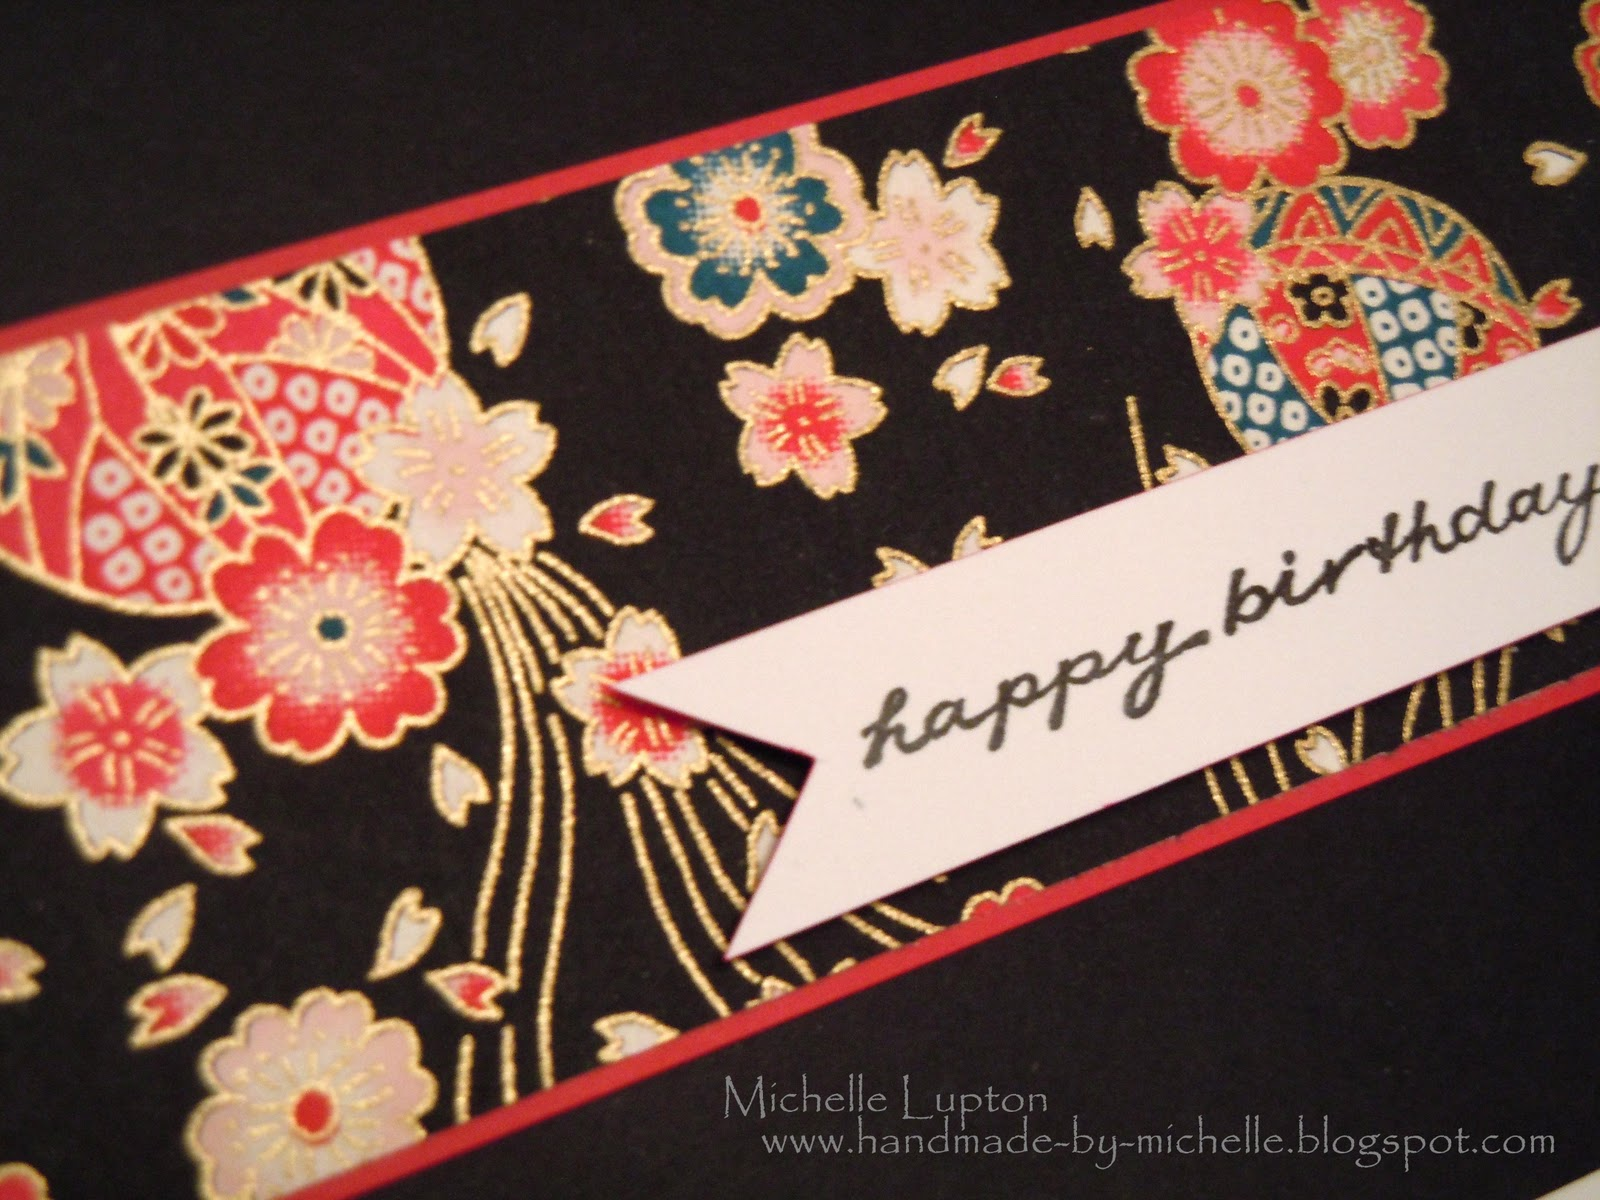 Handmade by Michelle Happy birthday Kate – Japanese Birthday Cards